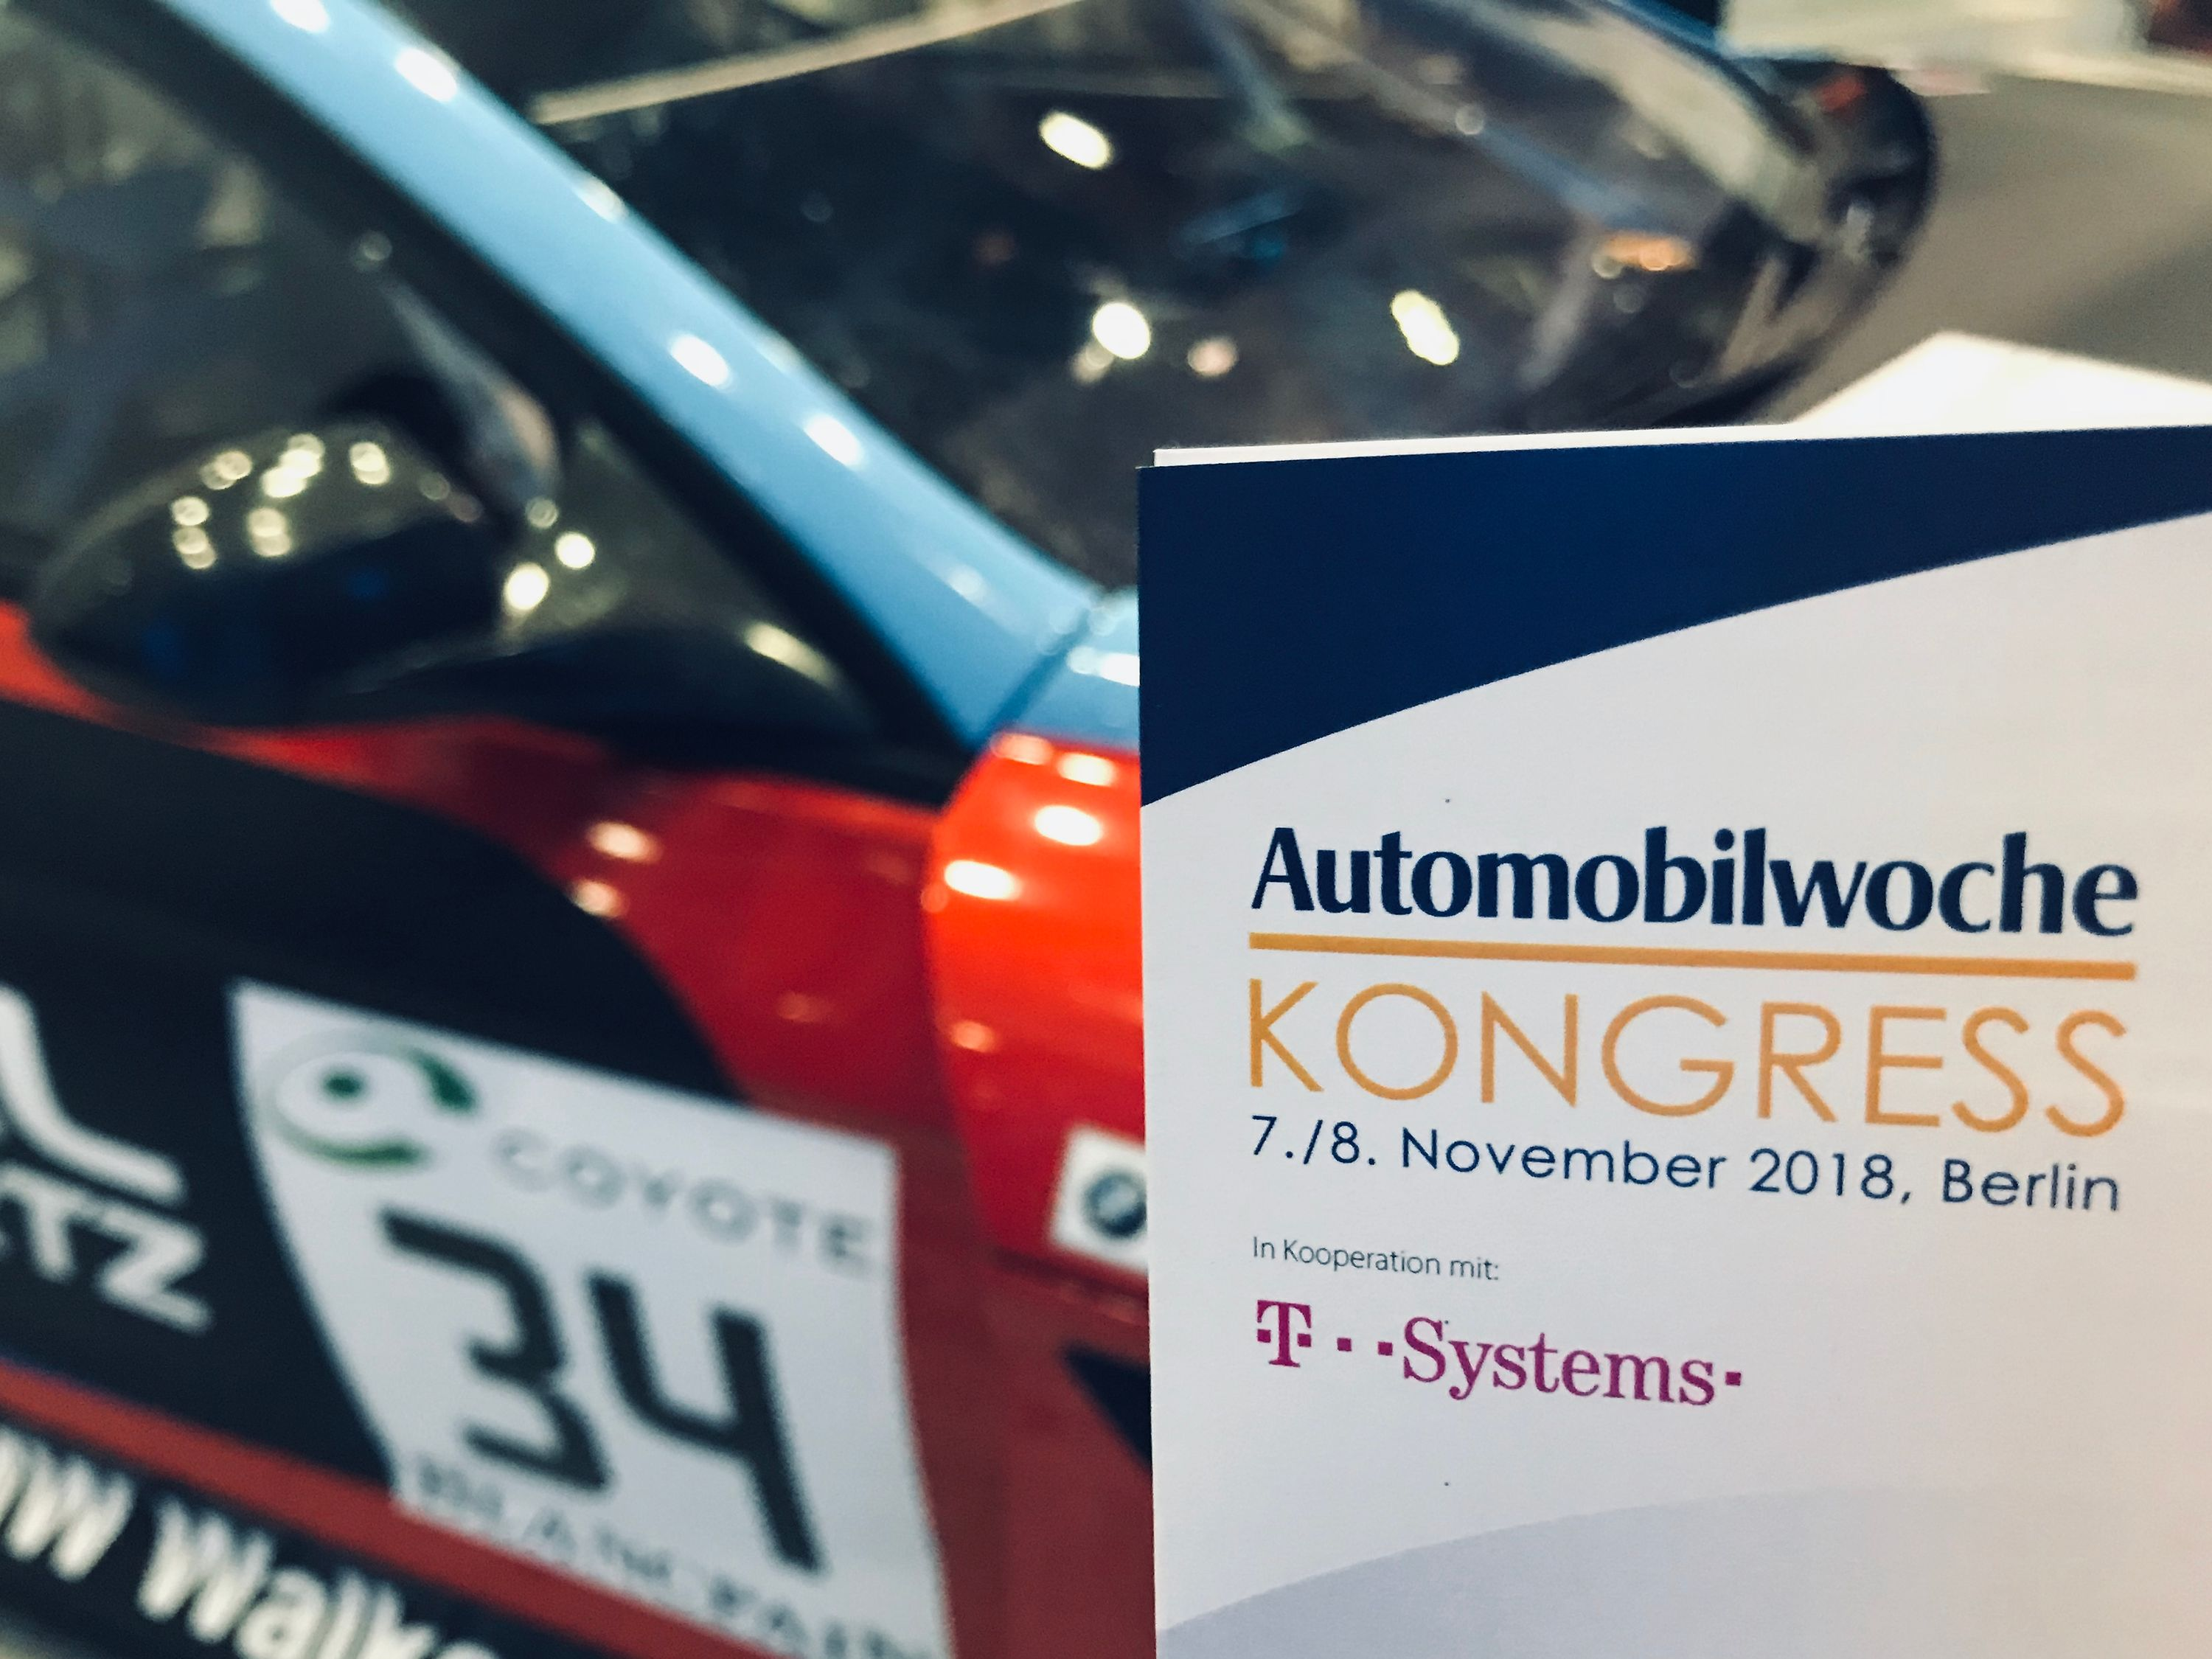 T-Systems war zum 13. Mal Partner des Automobilwochekongresses.